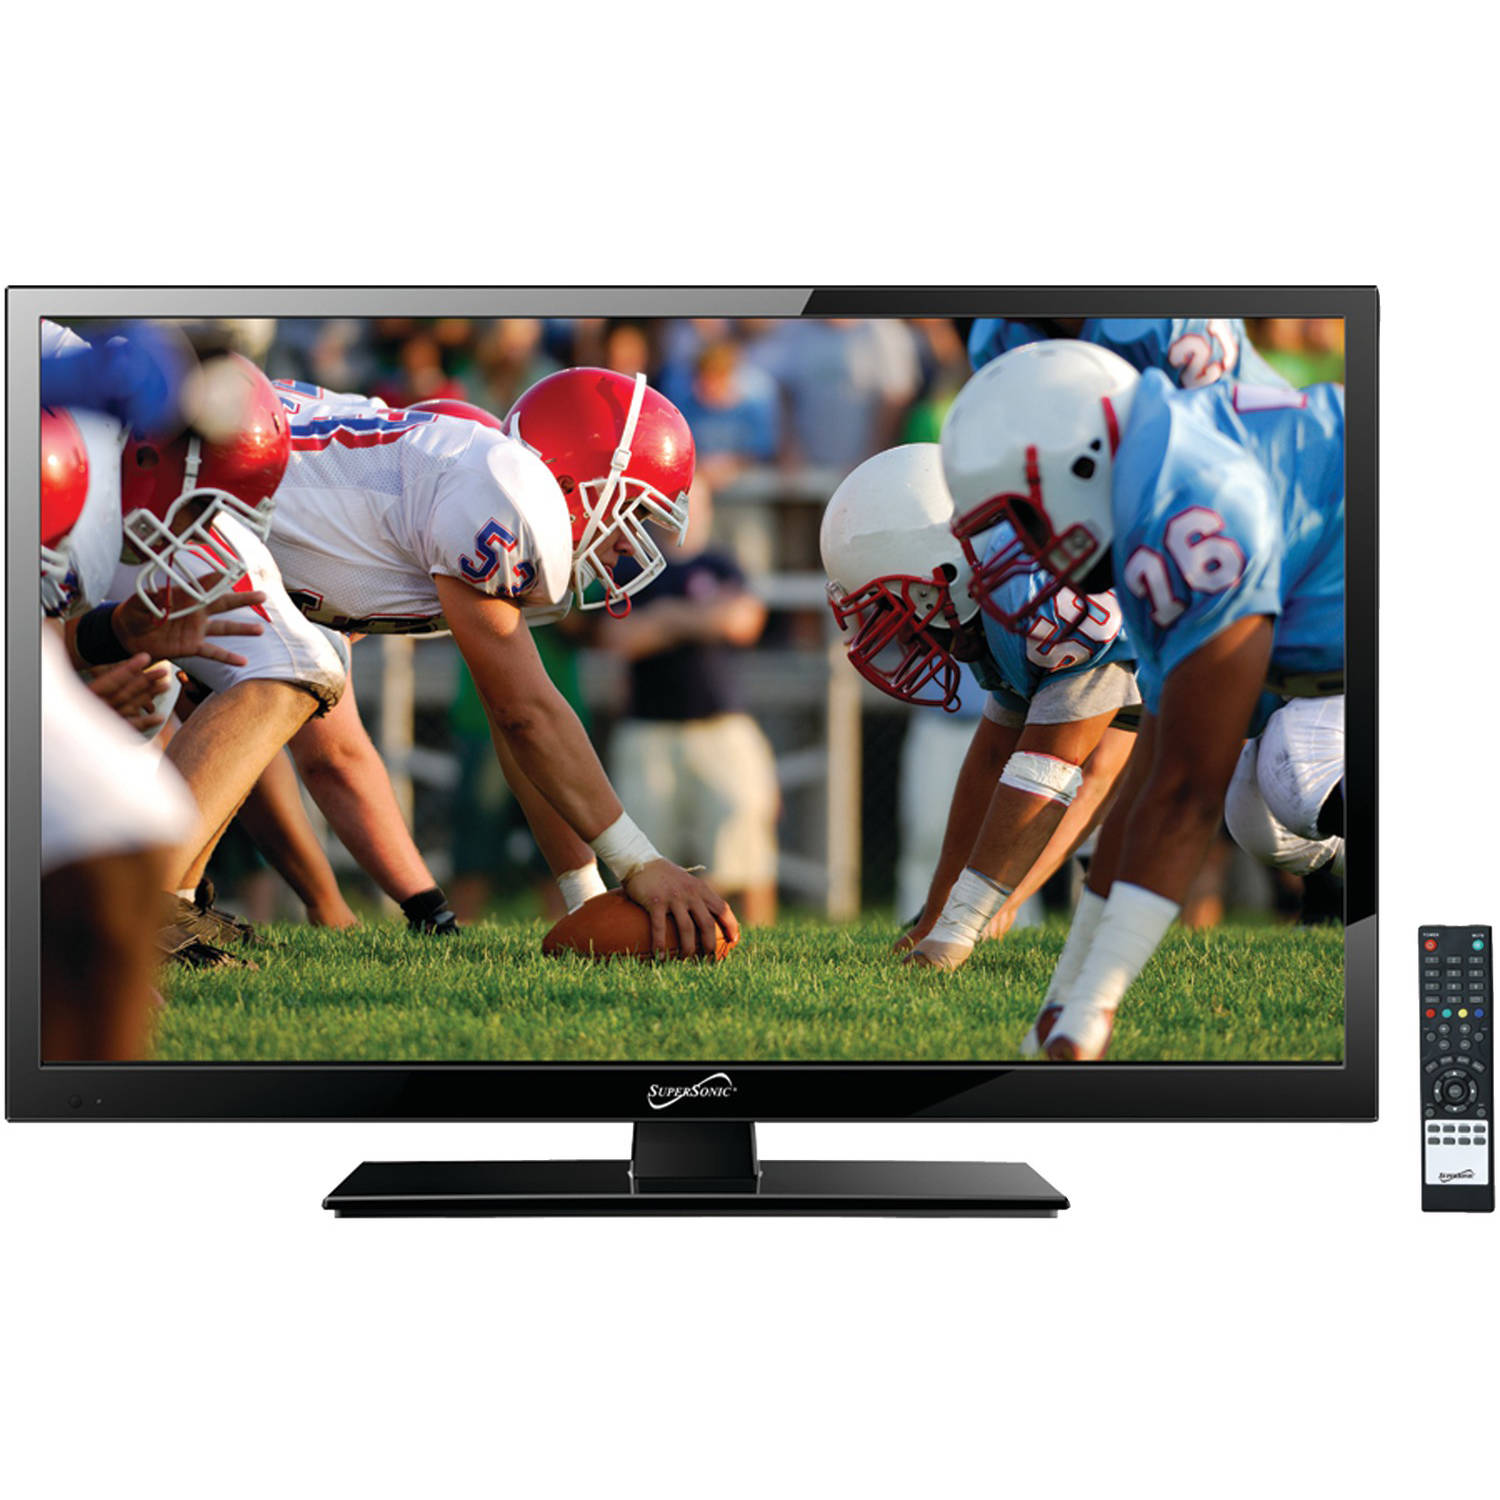 "Supersonic SC-2411 24"" 1080p 5ms LED HDTV"